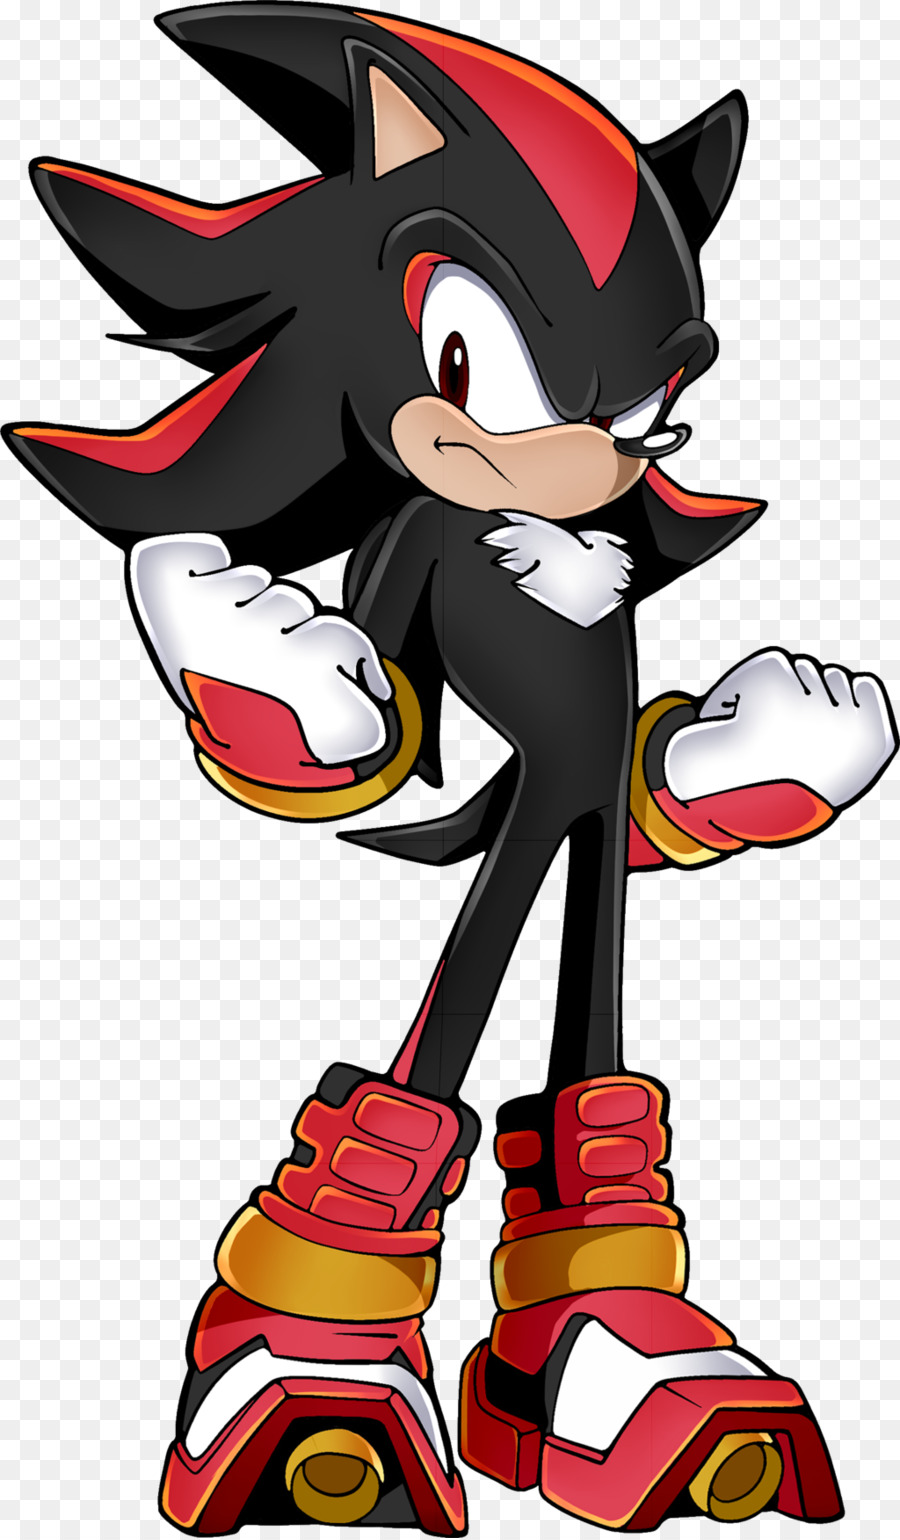 Shadow The Hedgehog Sonic The Hedgehog S 475257 Png Images Pngio